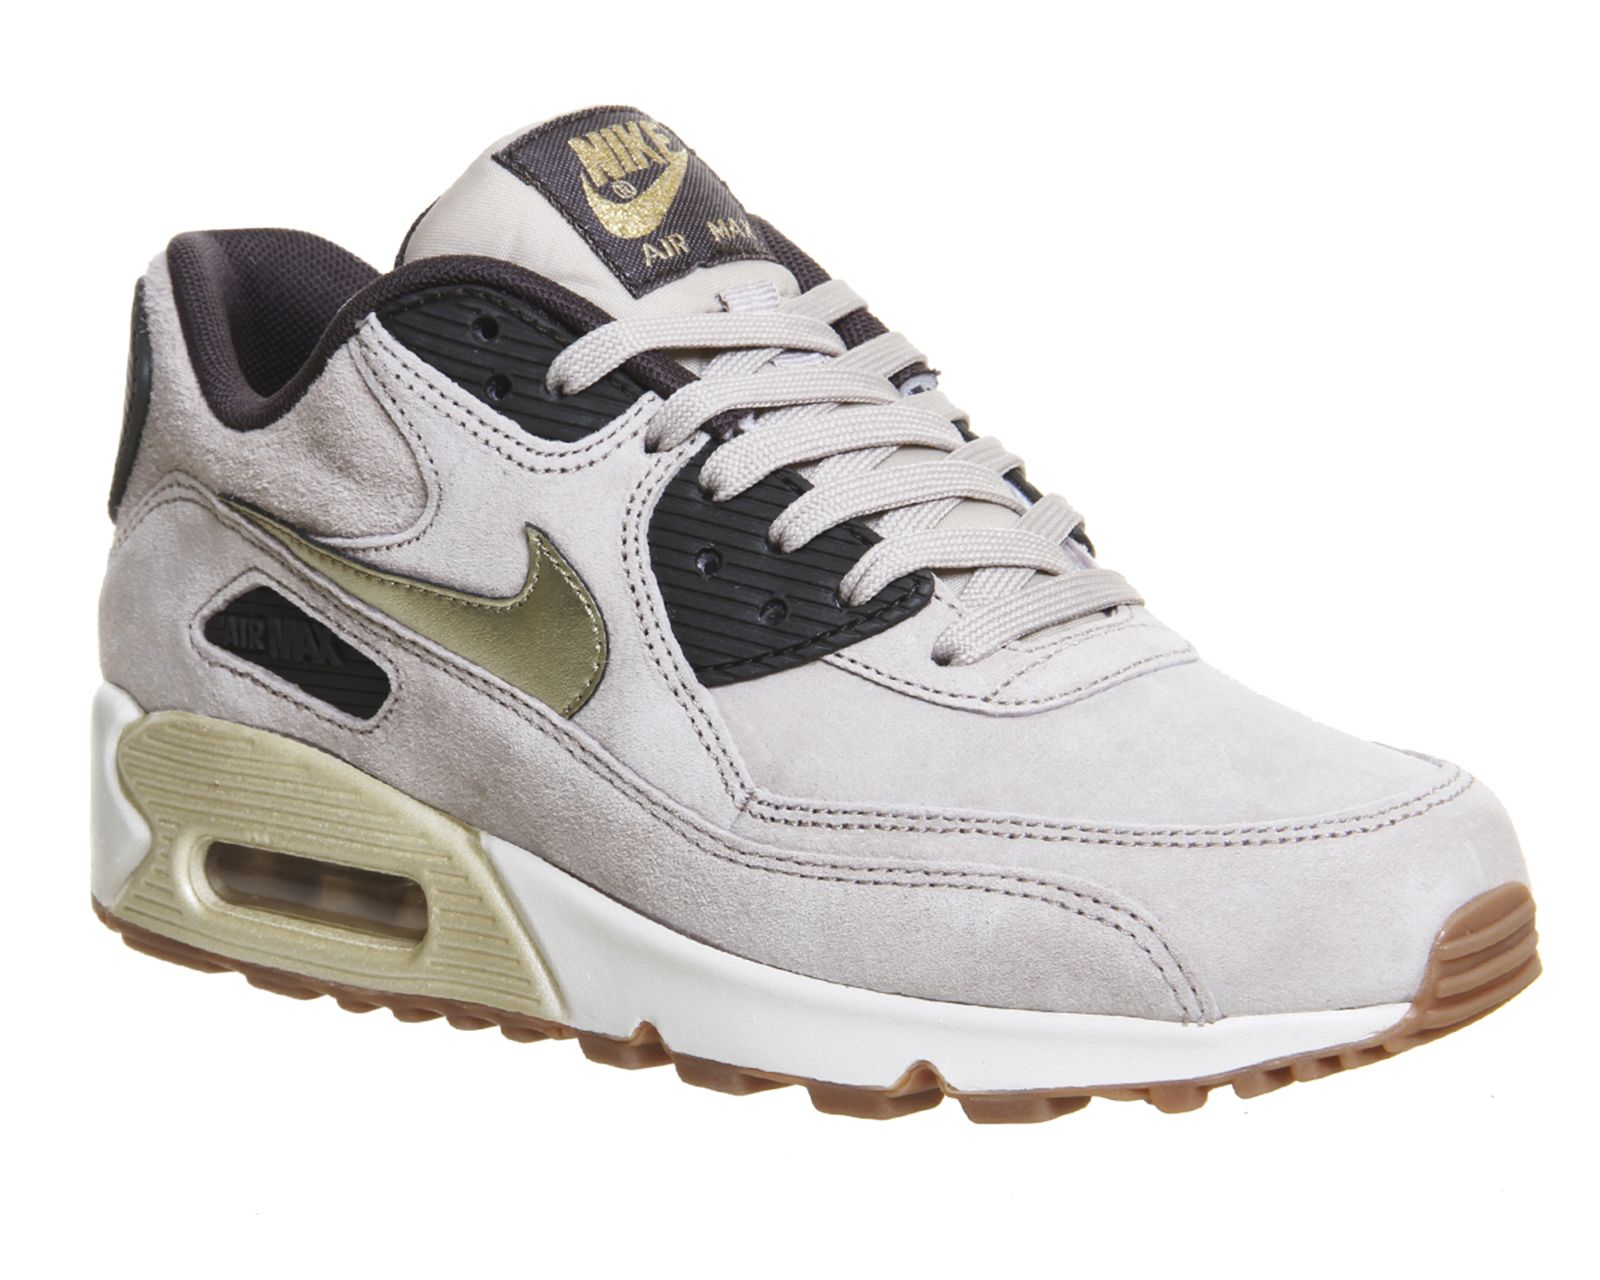 String Metallic Gold Grain Nike Air Max 90 W From Office Co